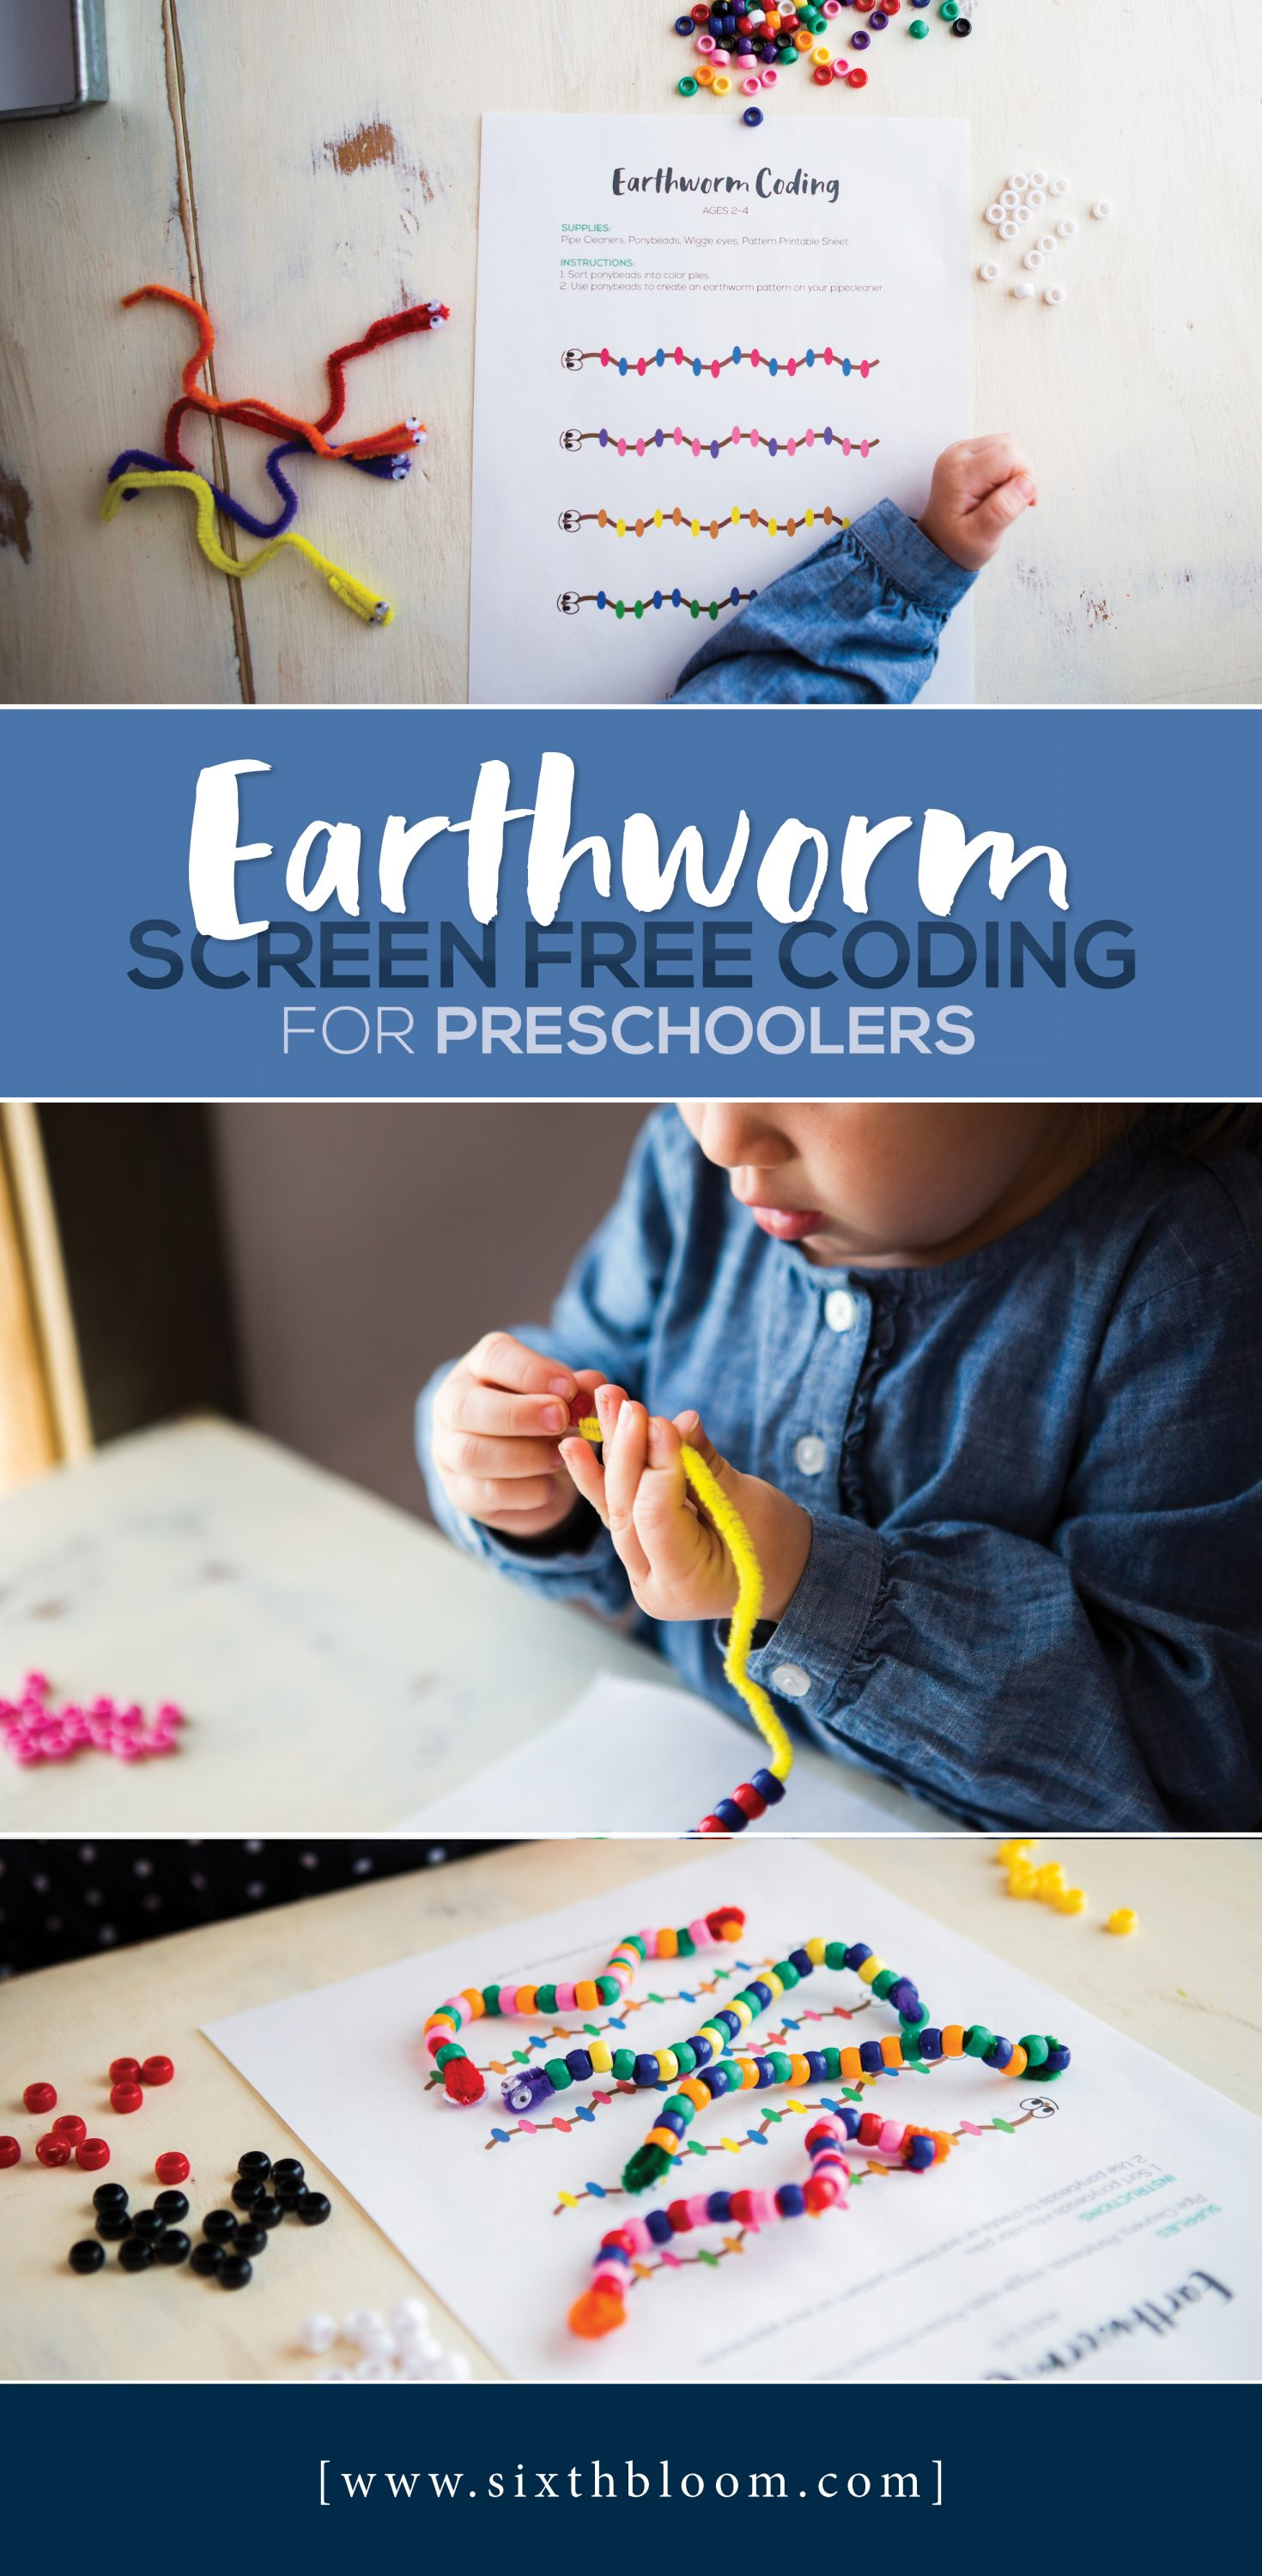 Earthworm Screen Free Coding For Preschoolers